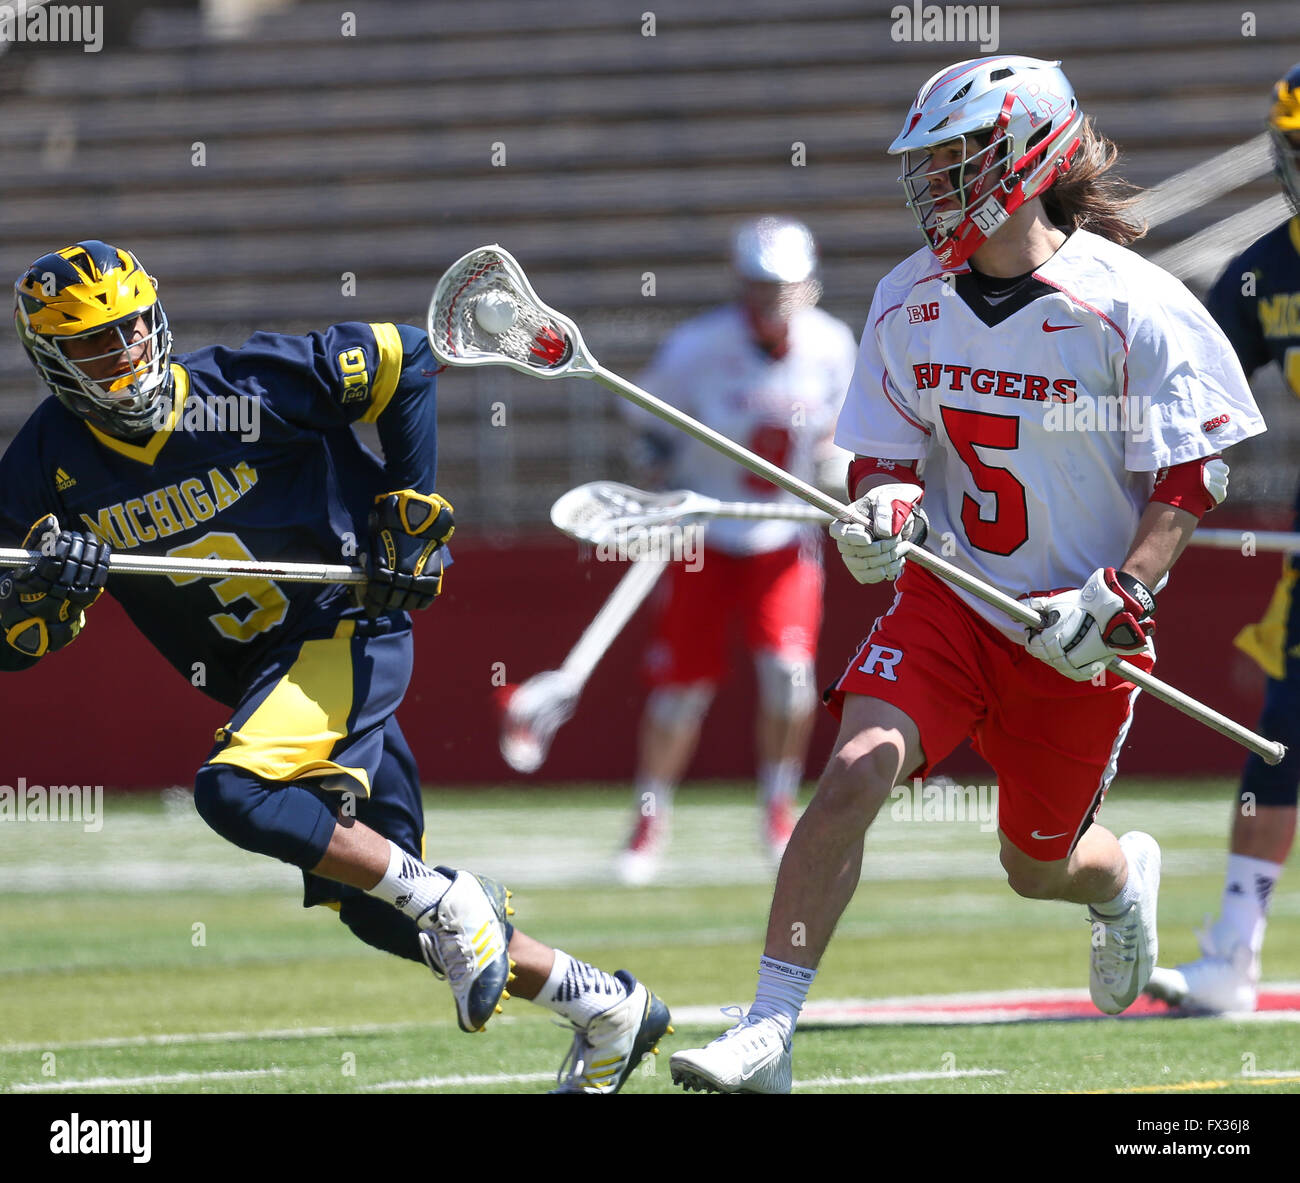 Piscataway, NJ, USA. 10th Apr, 2016. Rutgers Kyle Pless (5) brings the ball upfield during an NCAA Lacrosse game - Stock Image